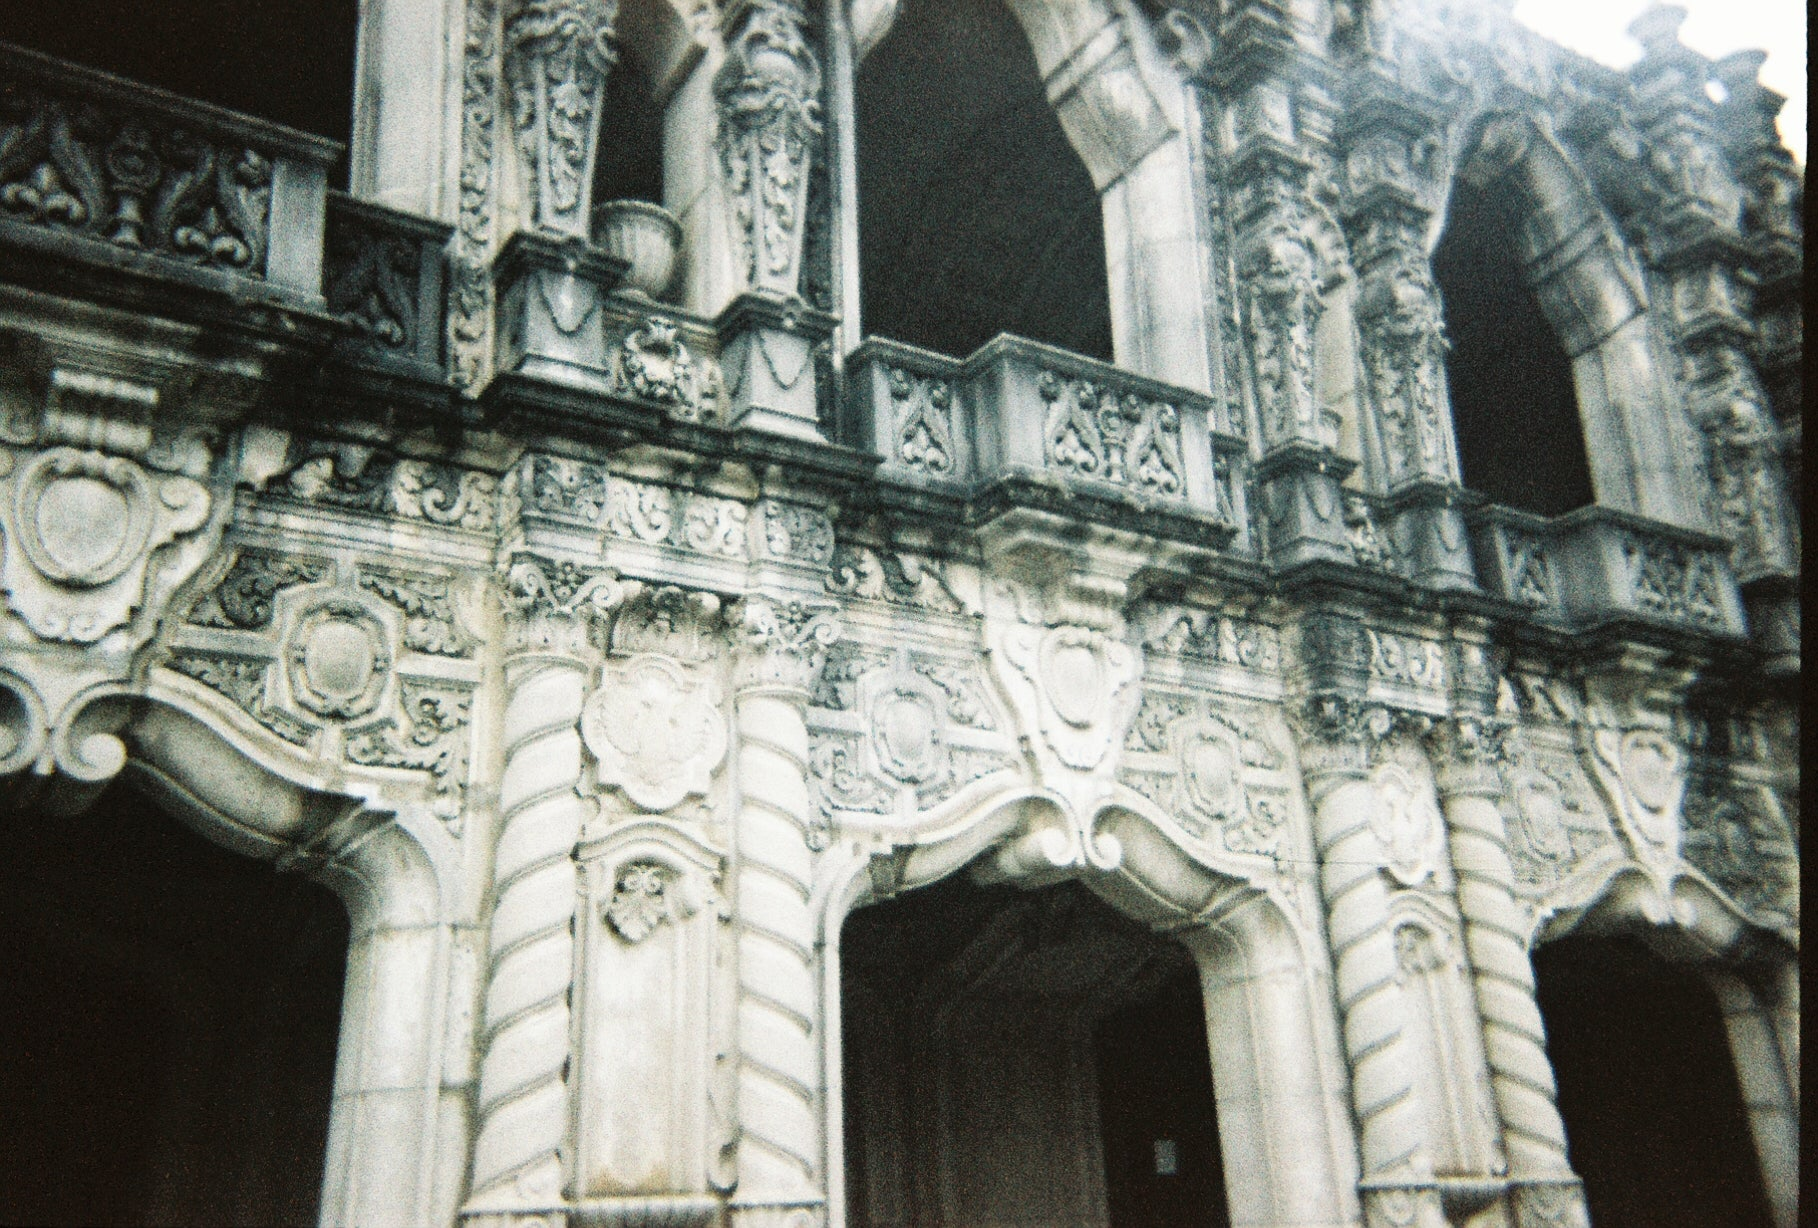 Faded film photo of large intricate grey archways in Atlanta's Westview Cemetery on a cloudy day.